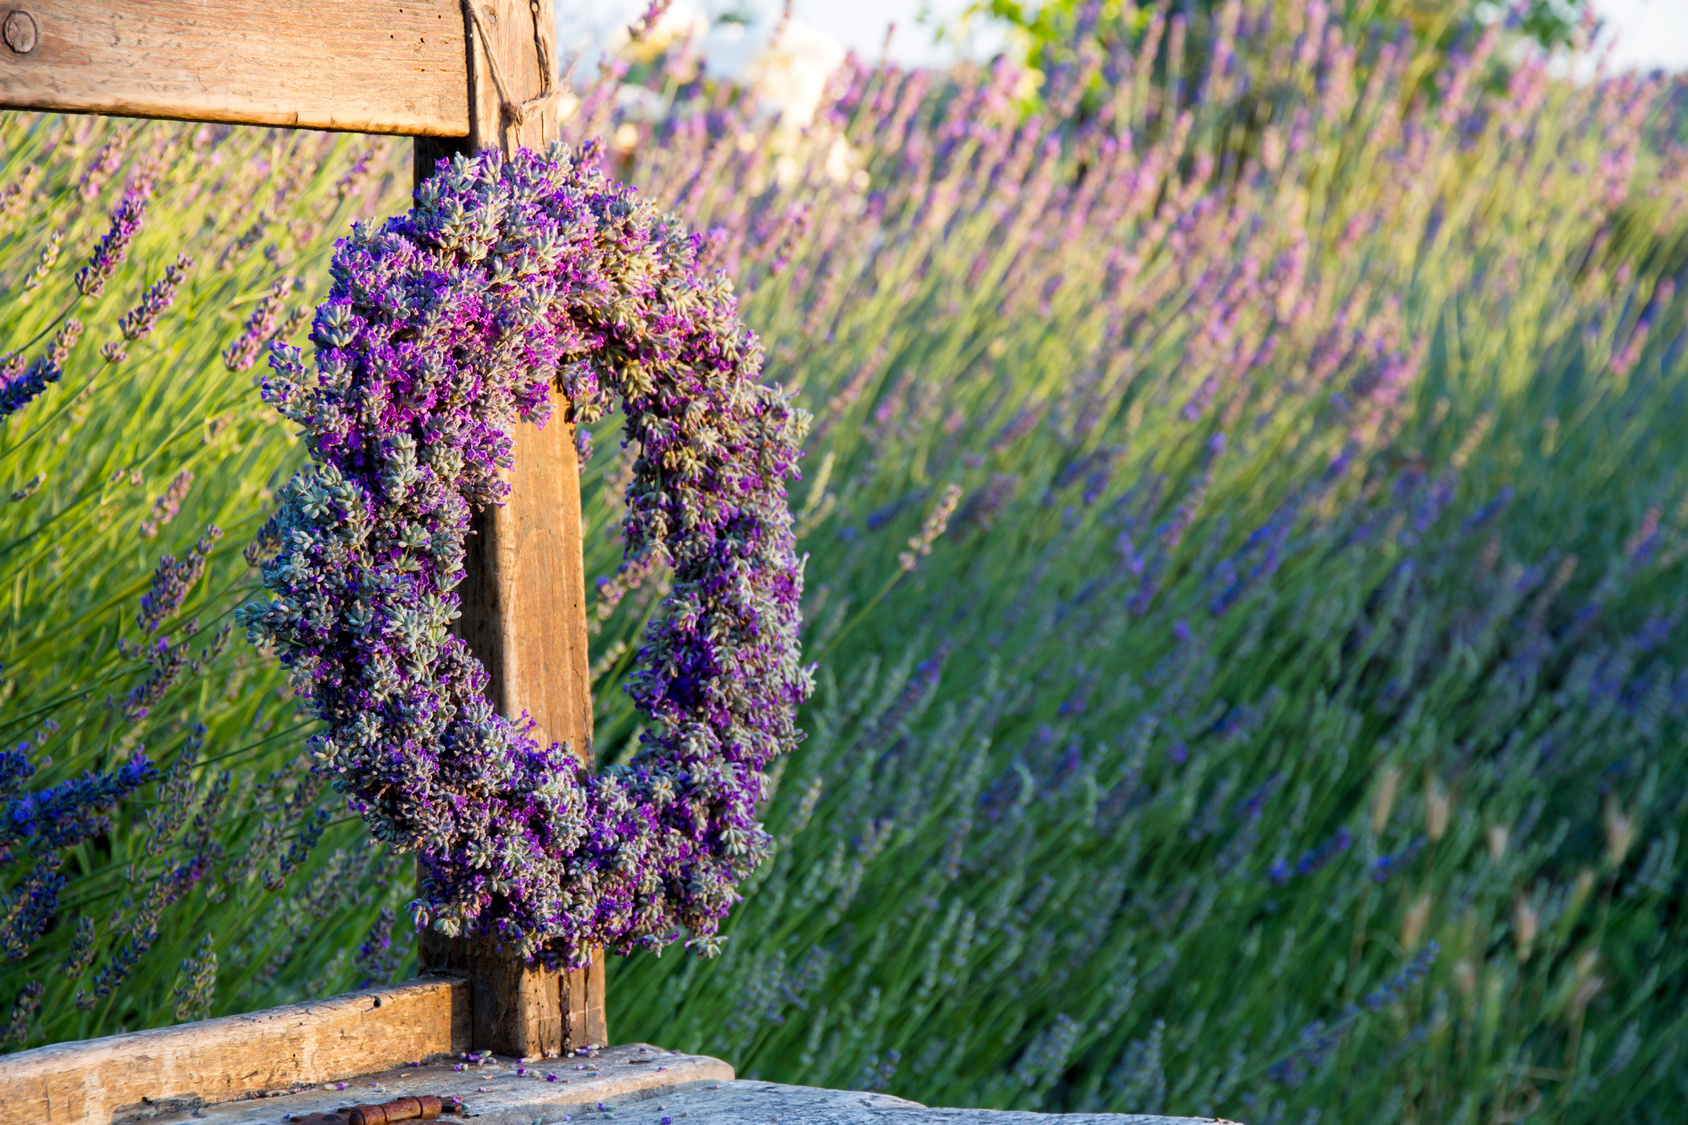 Lavender flower wreath on a wooden old bench in a summer garden